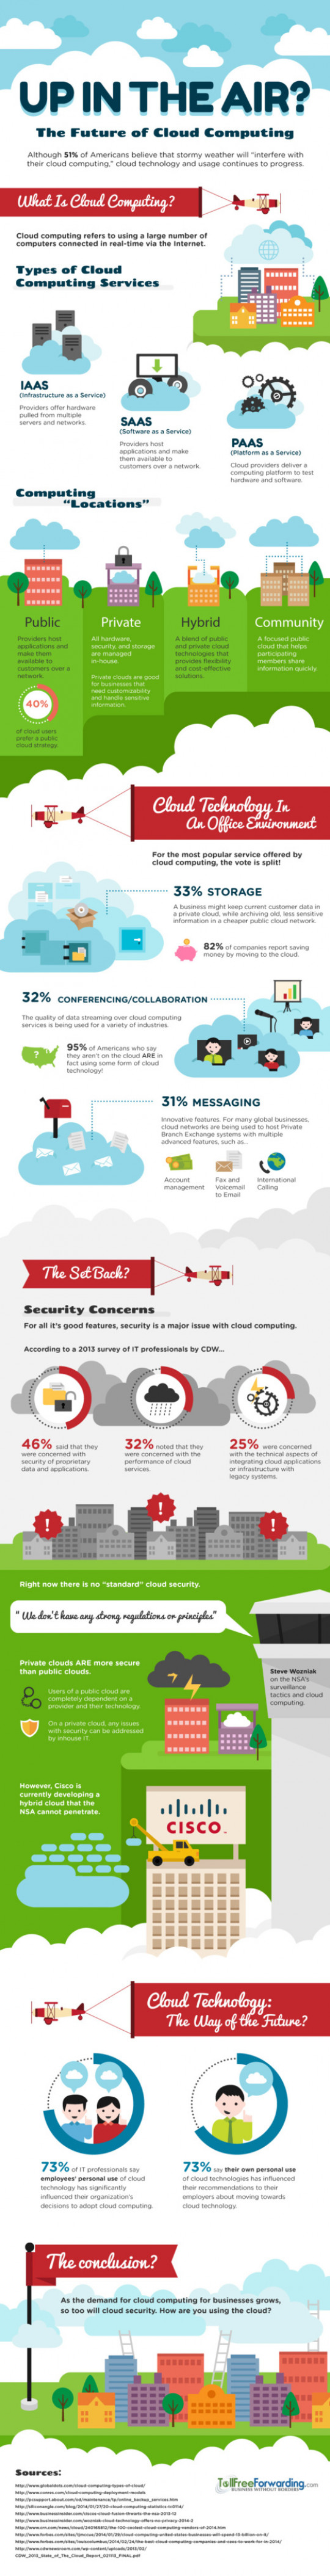 Up In The Air? The Future of Cloud Computing